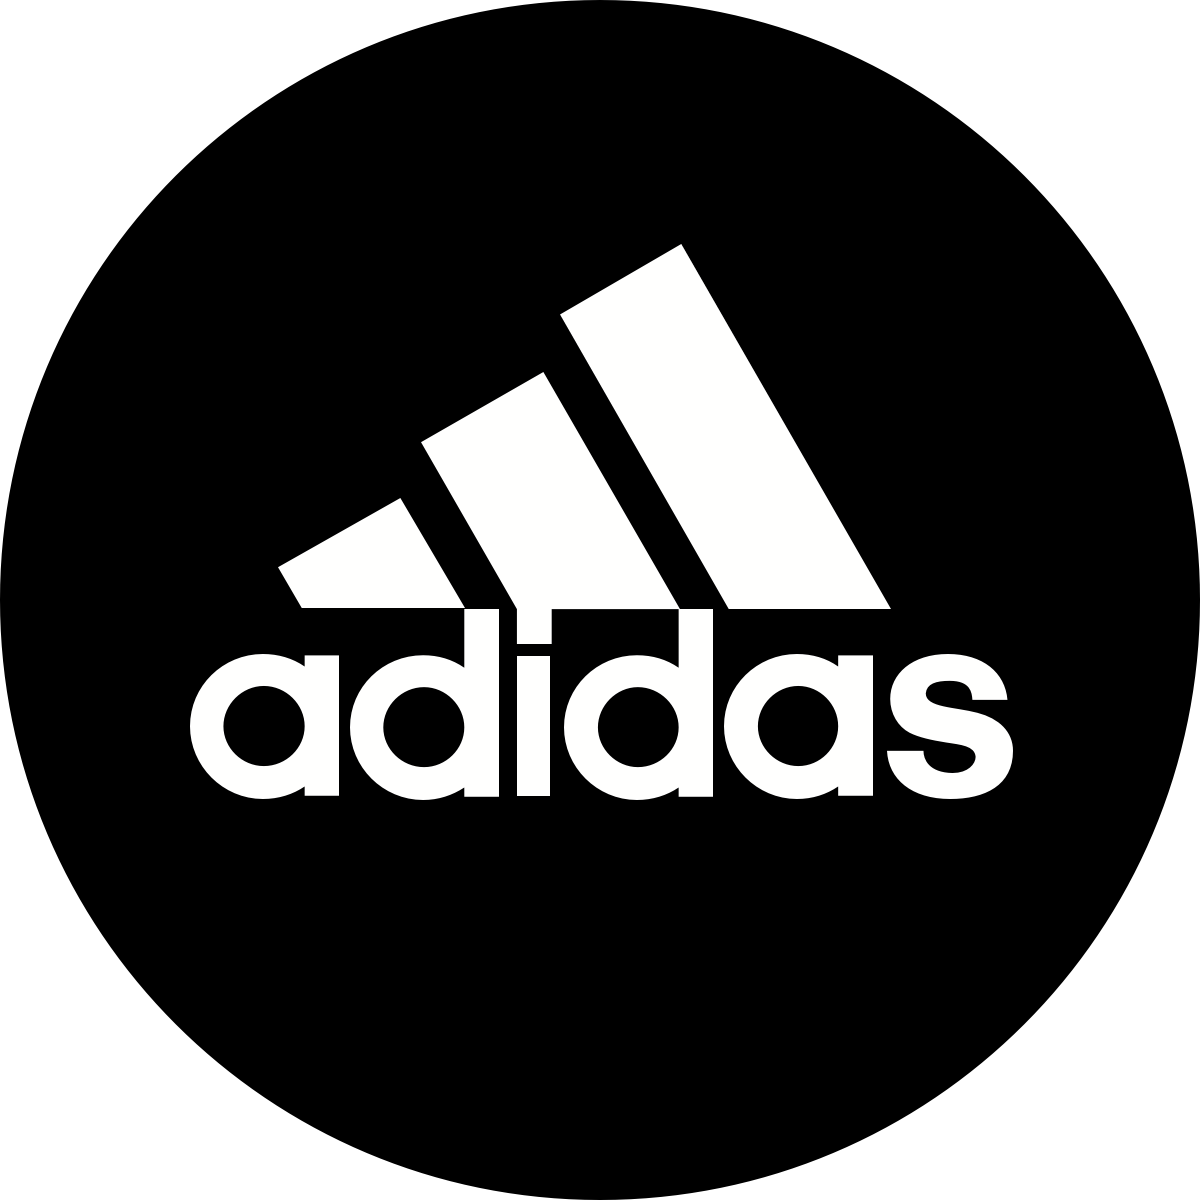 adidas icon - N26 partnership.